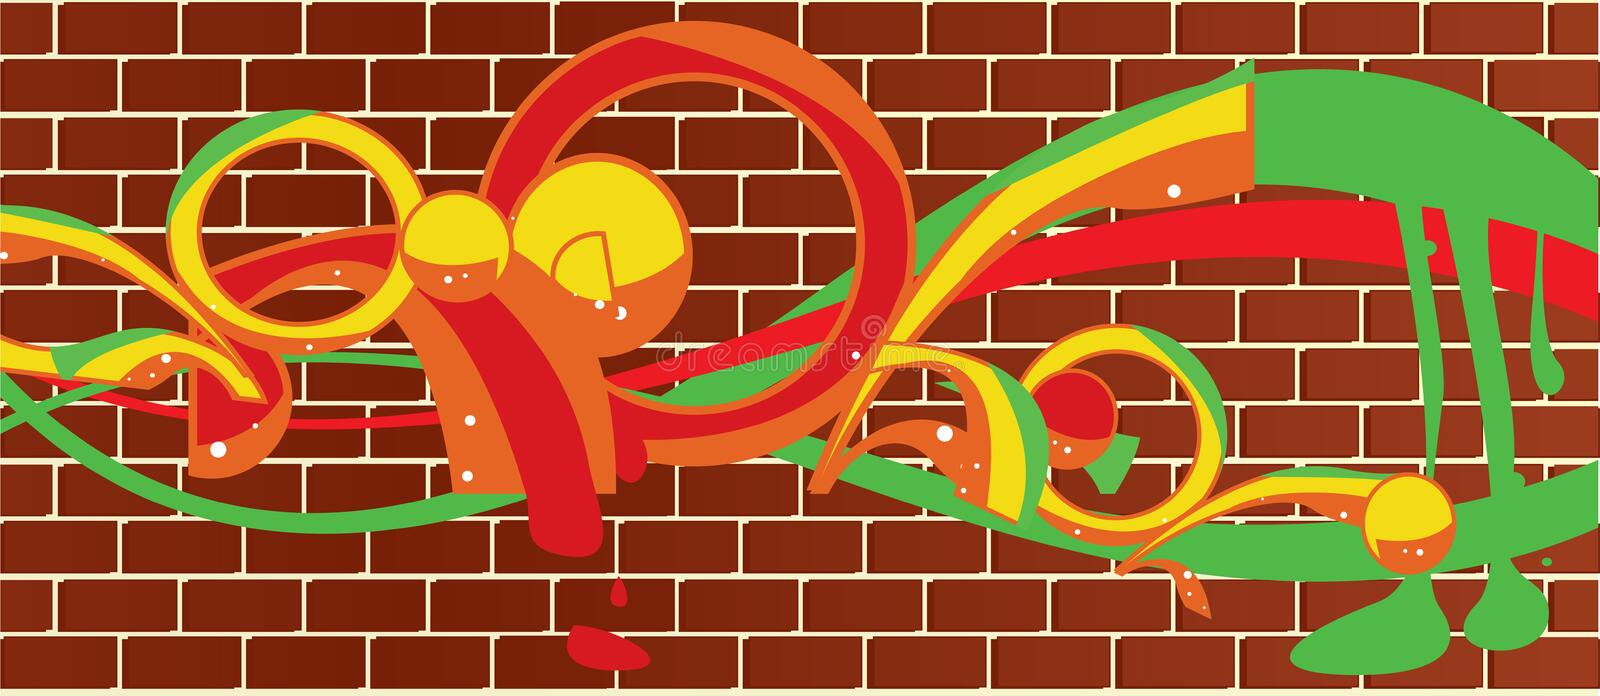 Brick wall graffitti stock illustration